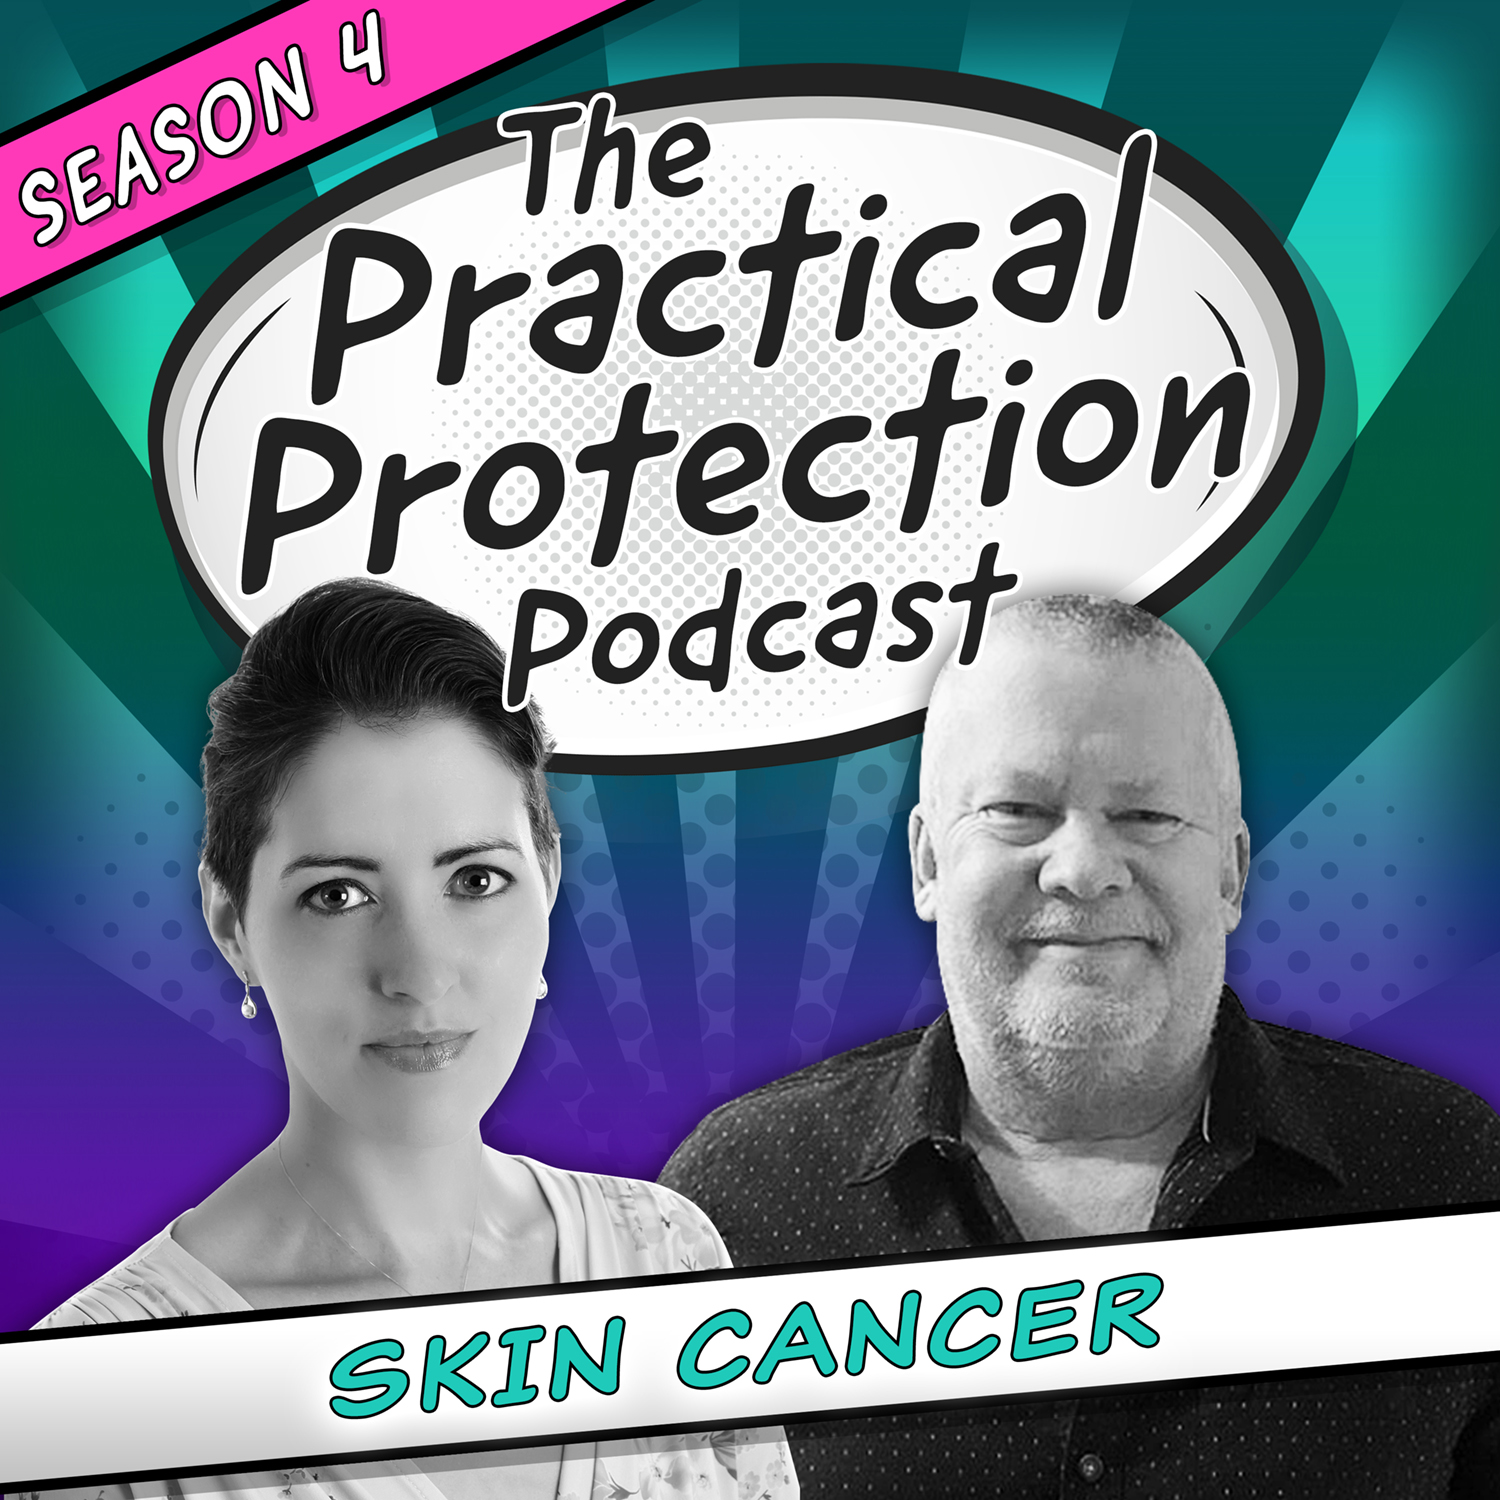 Artwork for podcast The Practical Protection Podcast